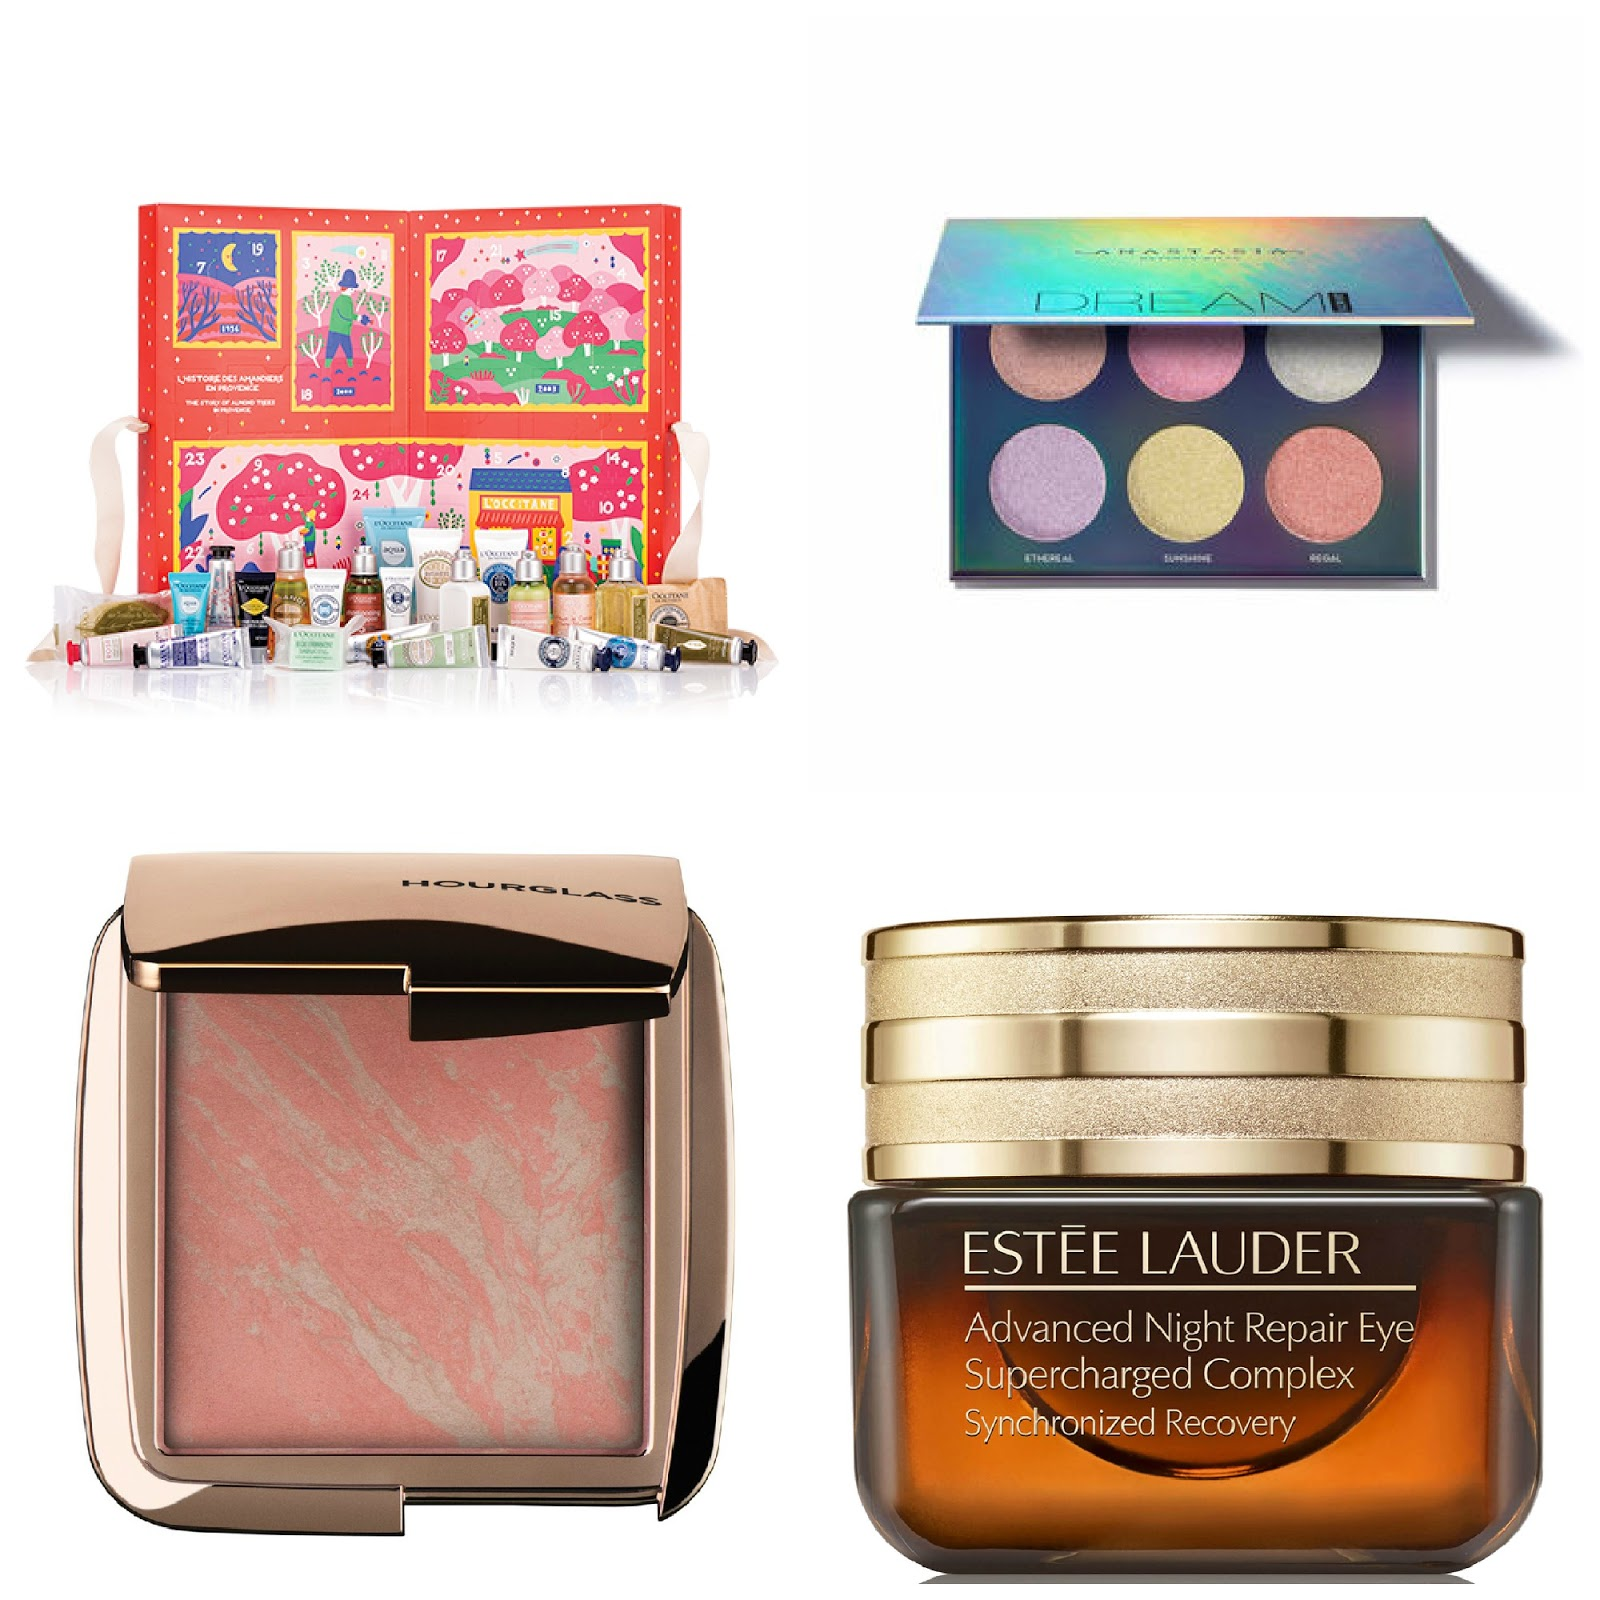 The best beauty deals online at the moment, Beauty Advent calendars 2019